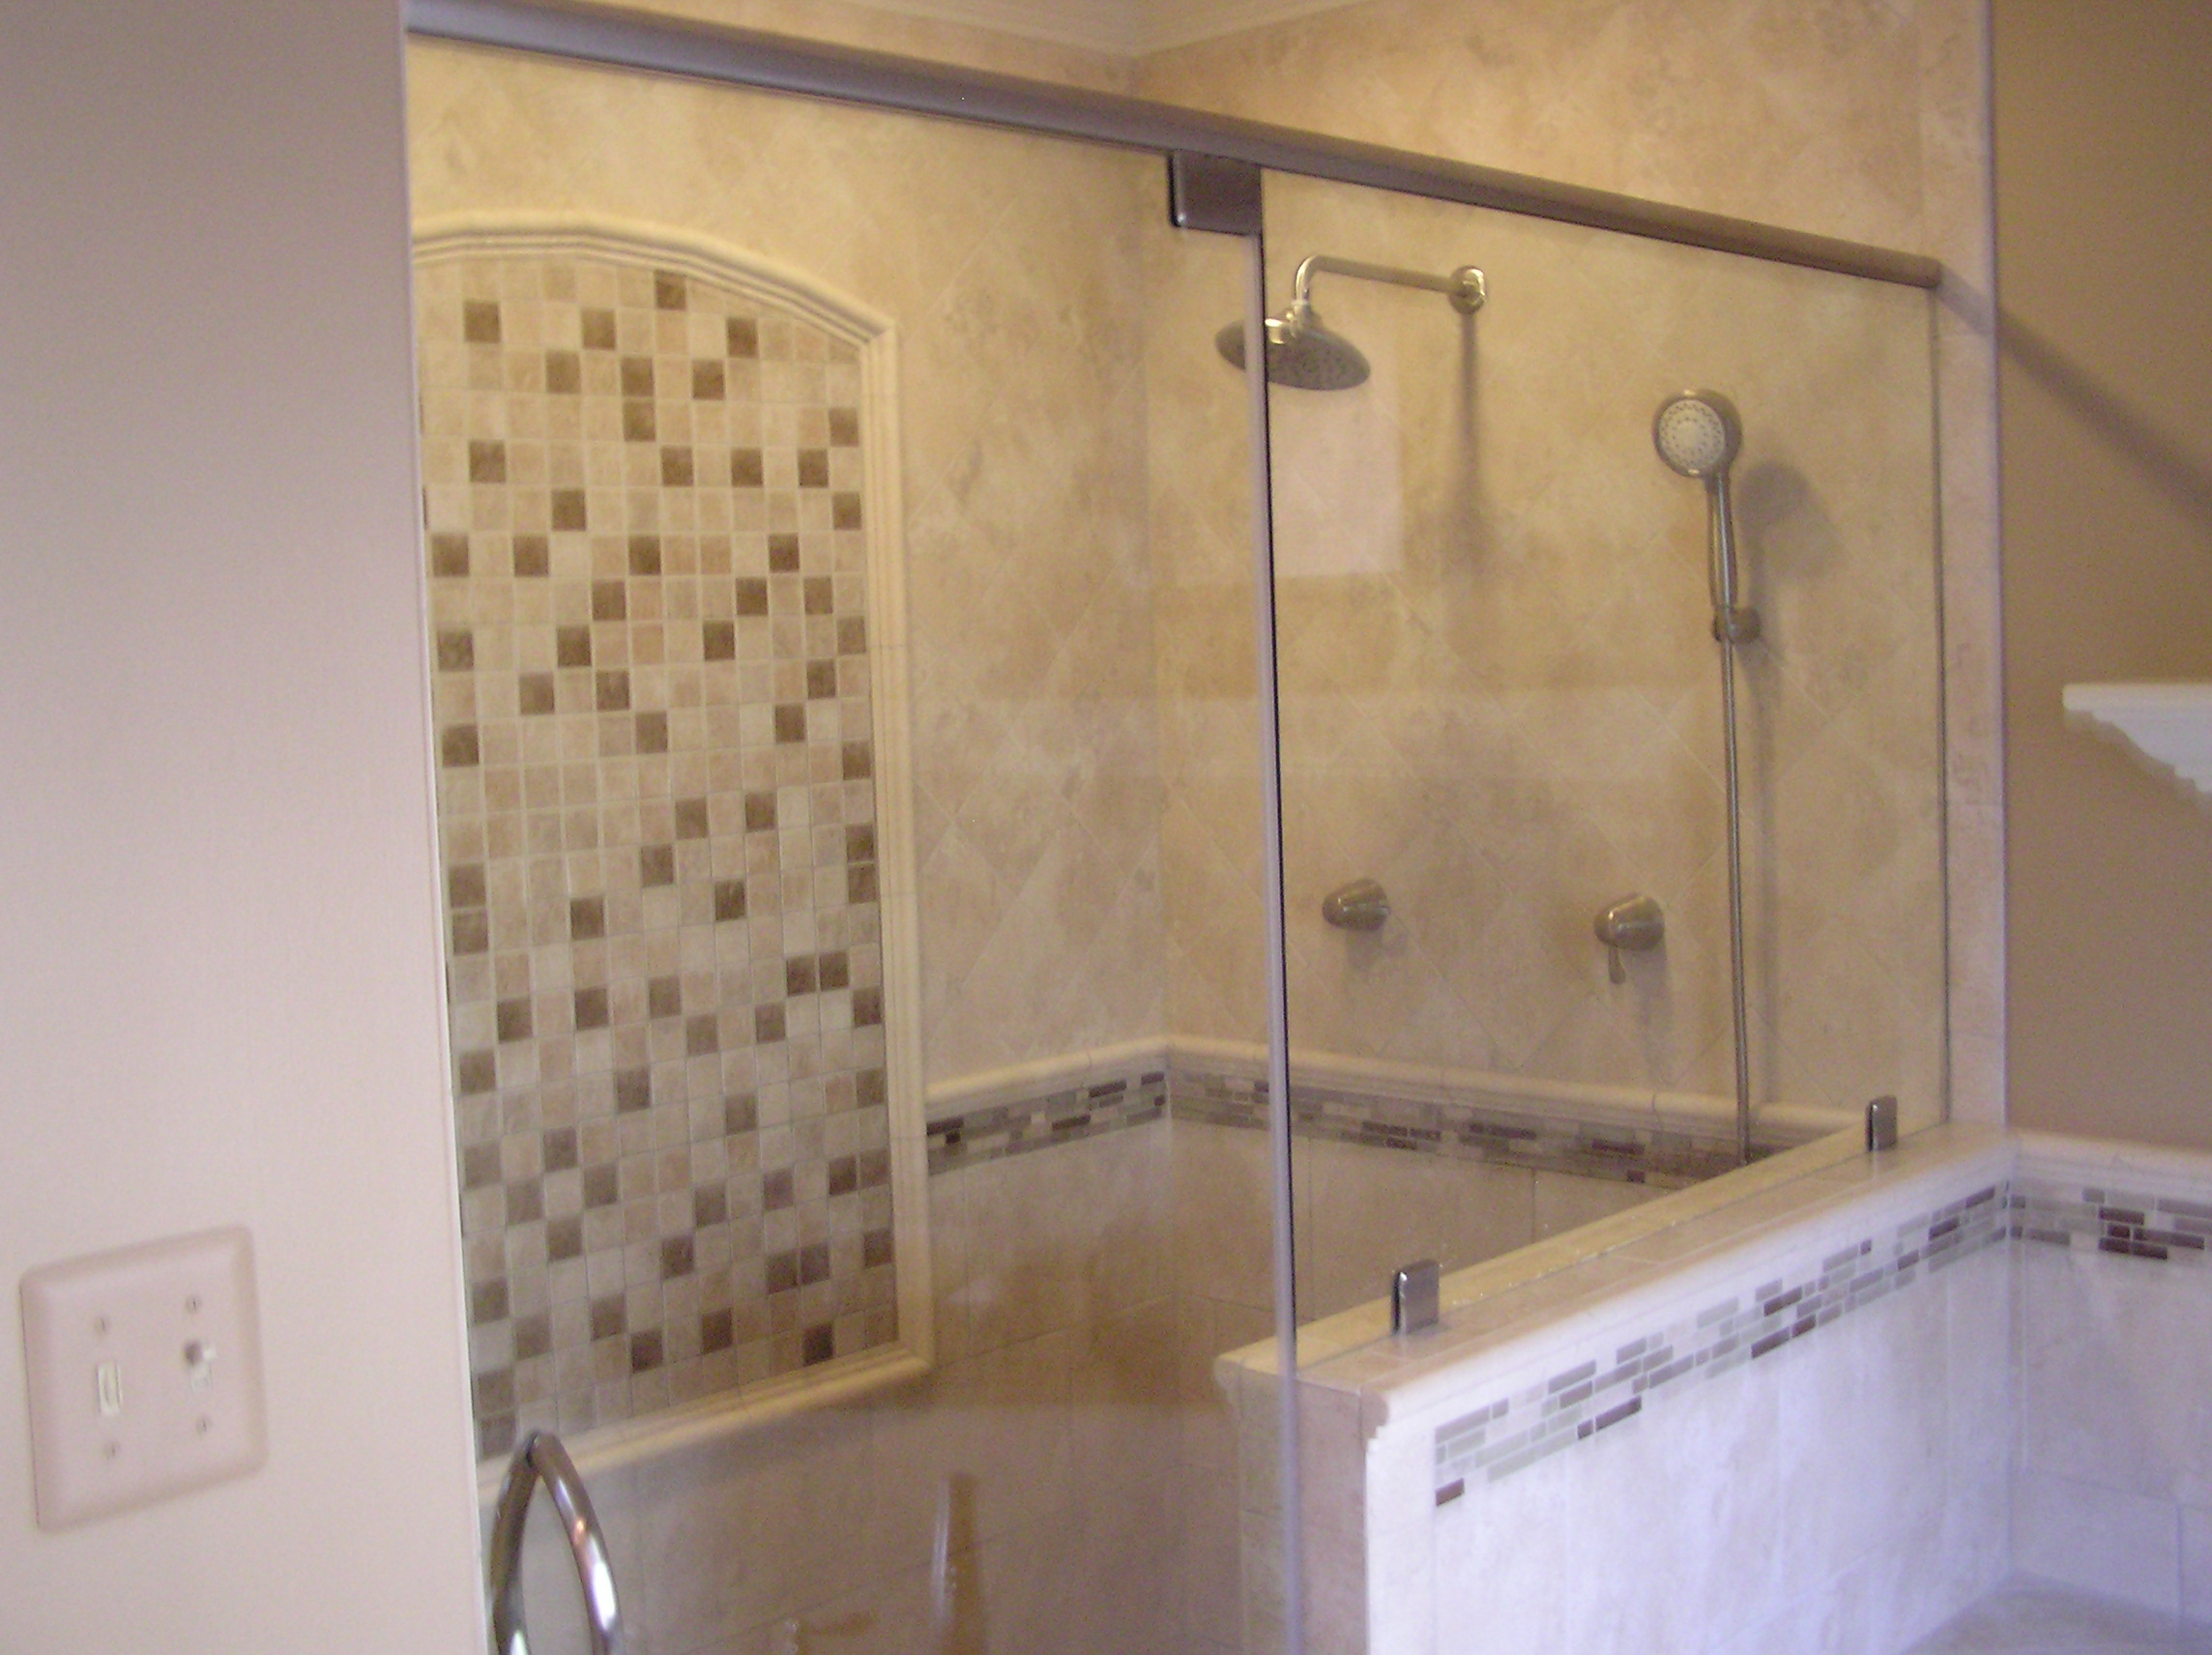 Bathroom Remodeling Showers Bathroom Remodel Ideas Walk In Shower